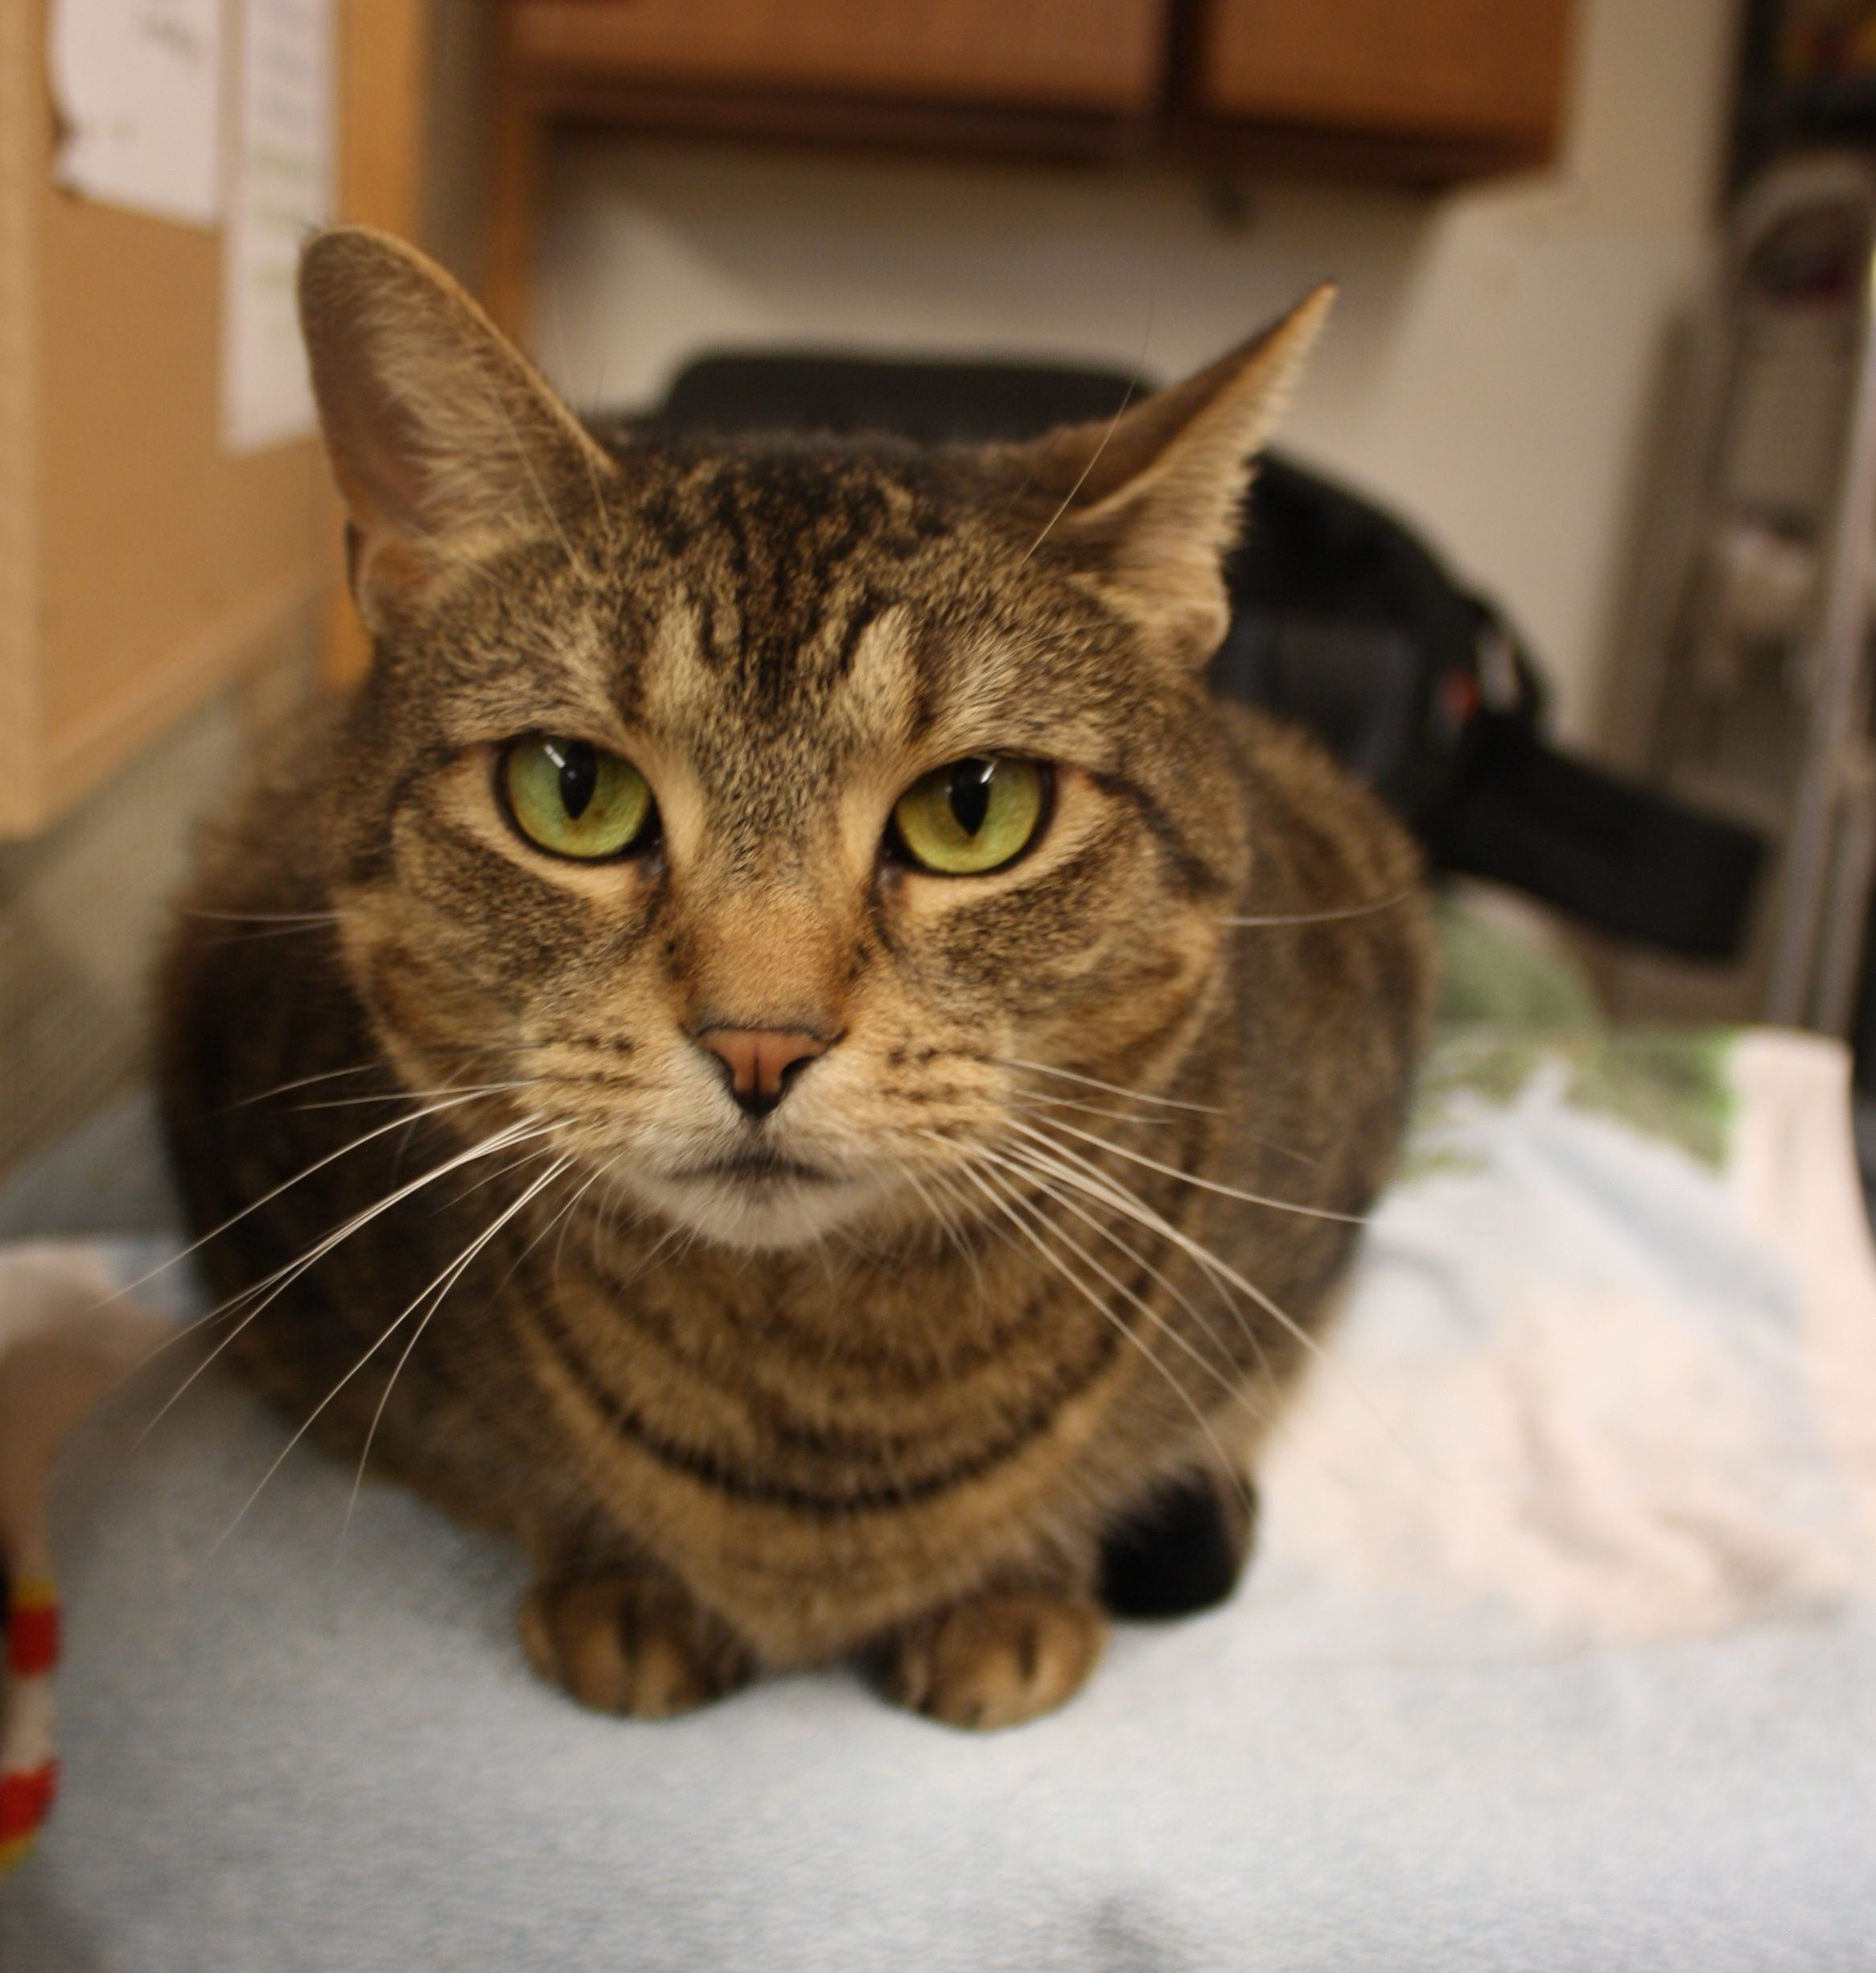 Rhianna is a beautiful cat available for adoption at the